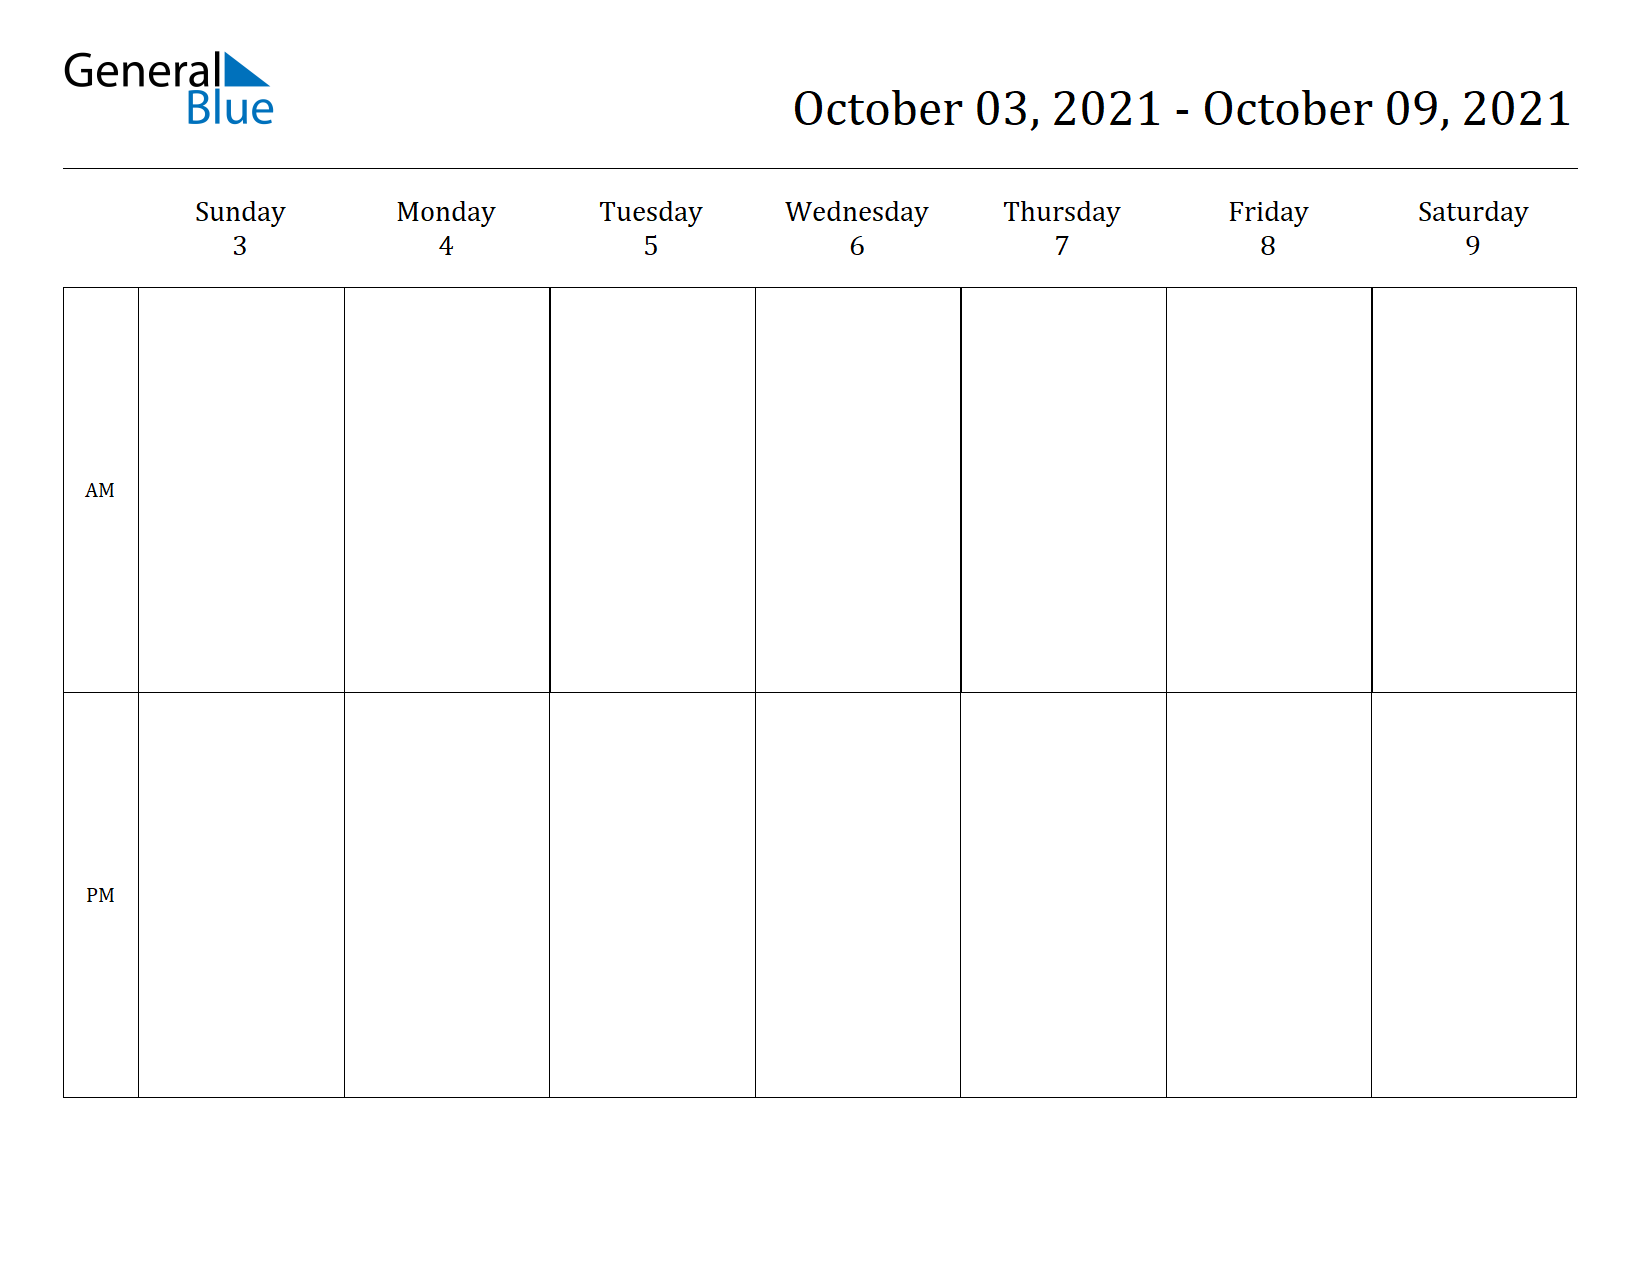 Weekly Calendar for Oct 03, 2021 to Oct 09, 2021